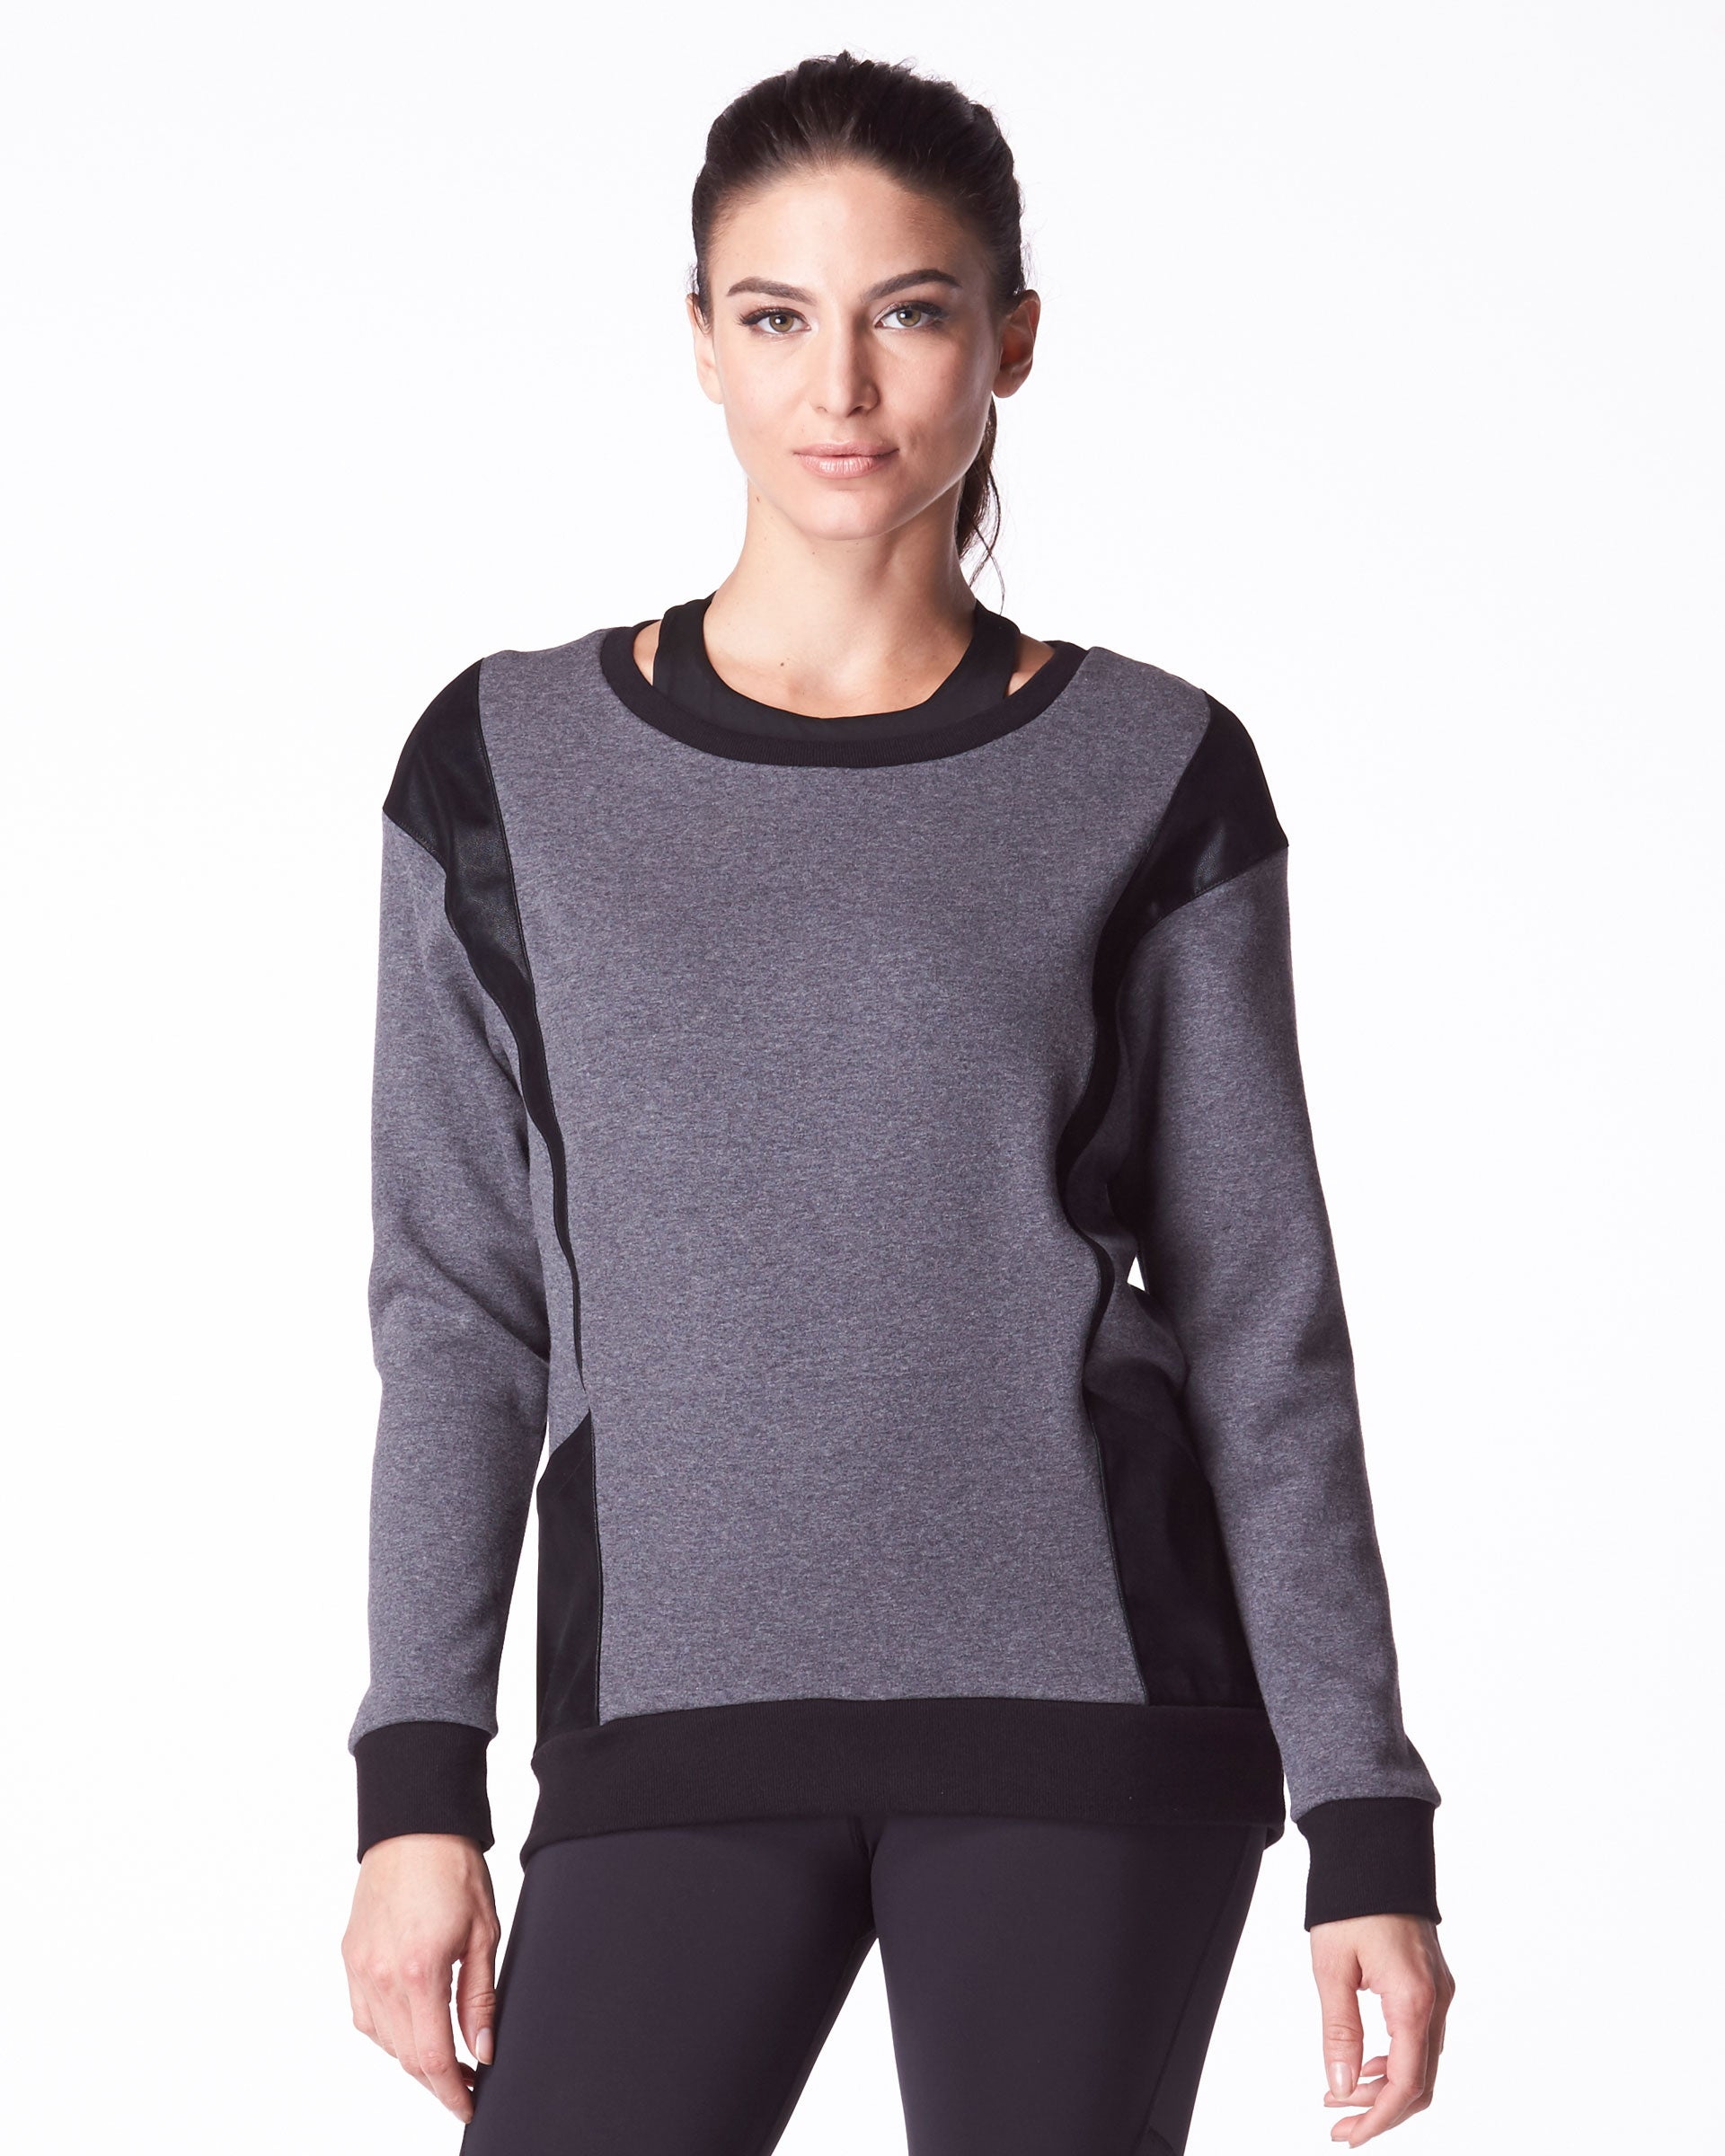 blade-sweatshirt-charcoal-grey